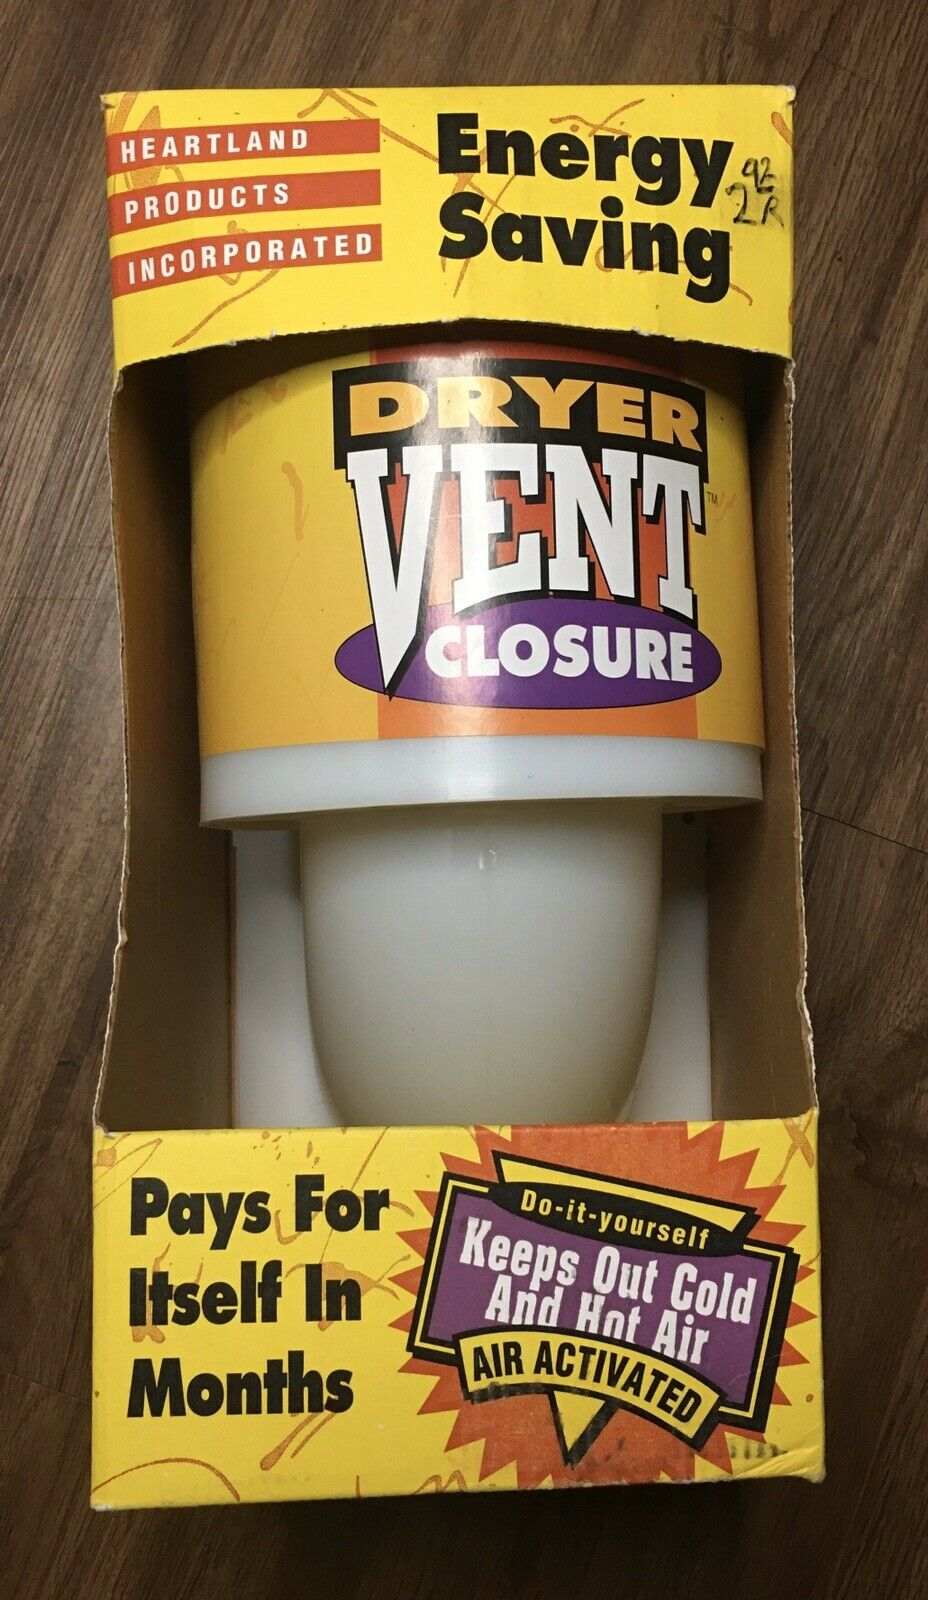 HEARTLAND 21000 Energy Saving Dryer Vent Closure